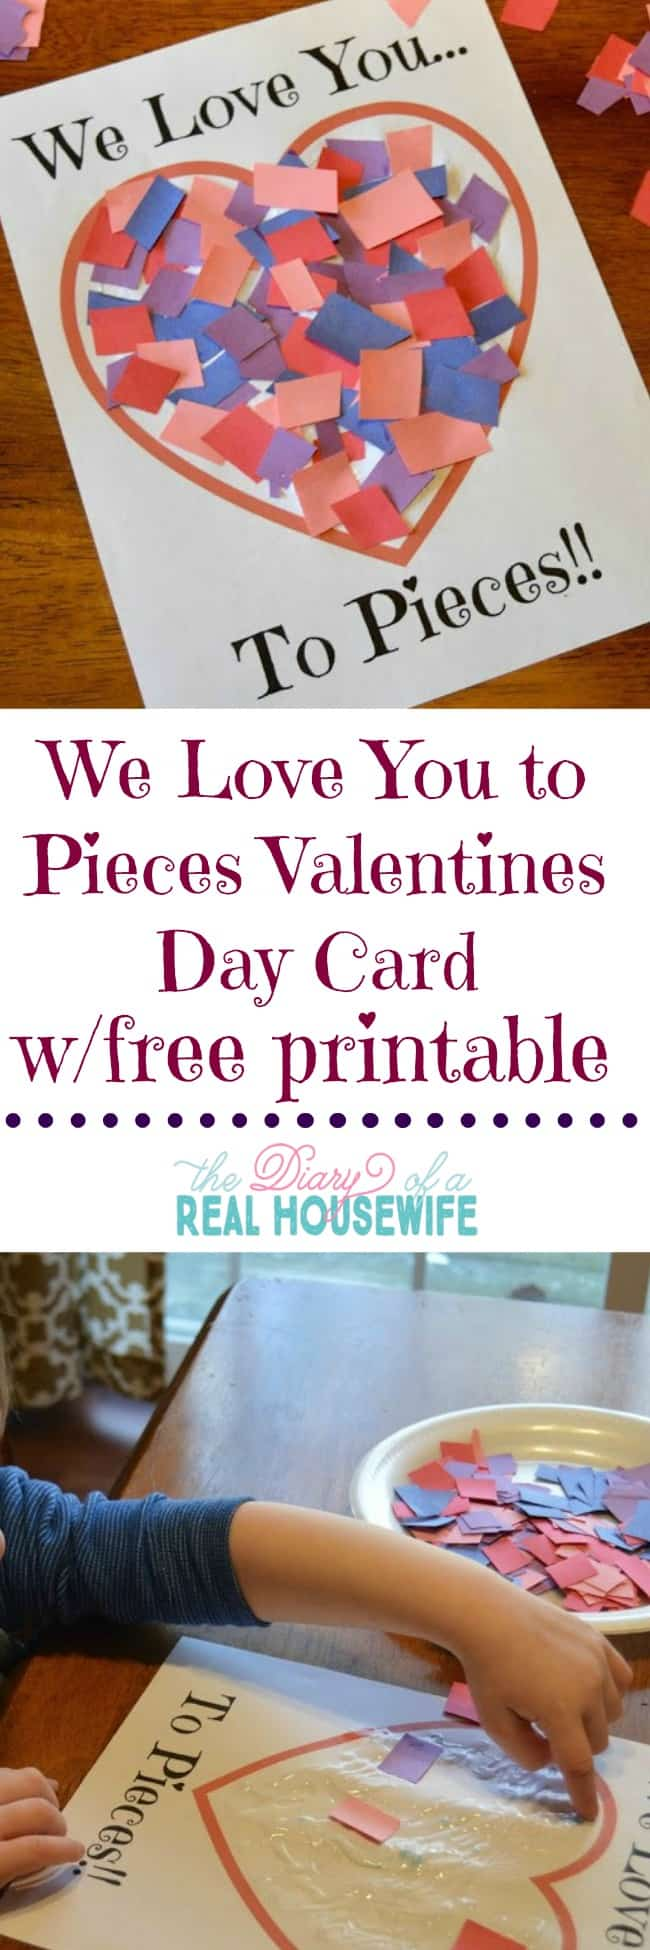 Love You to Pieces Valentines Day Craft Free Printable The – Make Your Own Valentines Card for Free